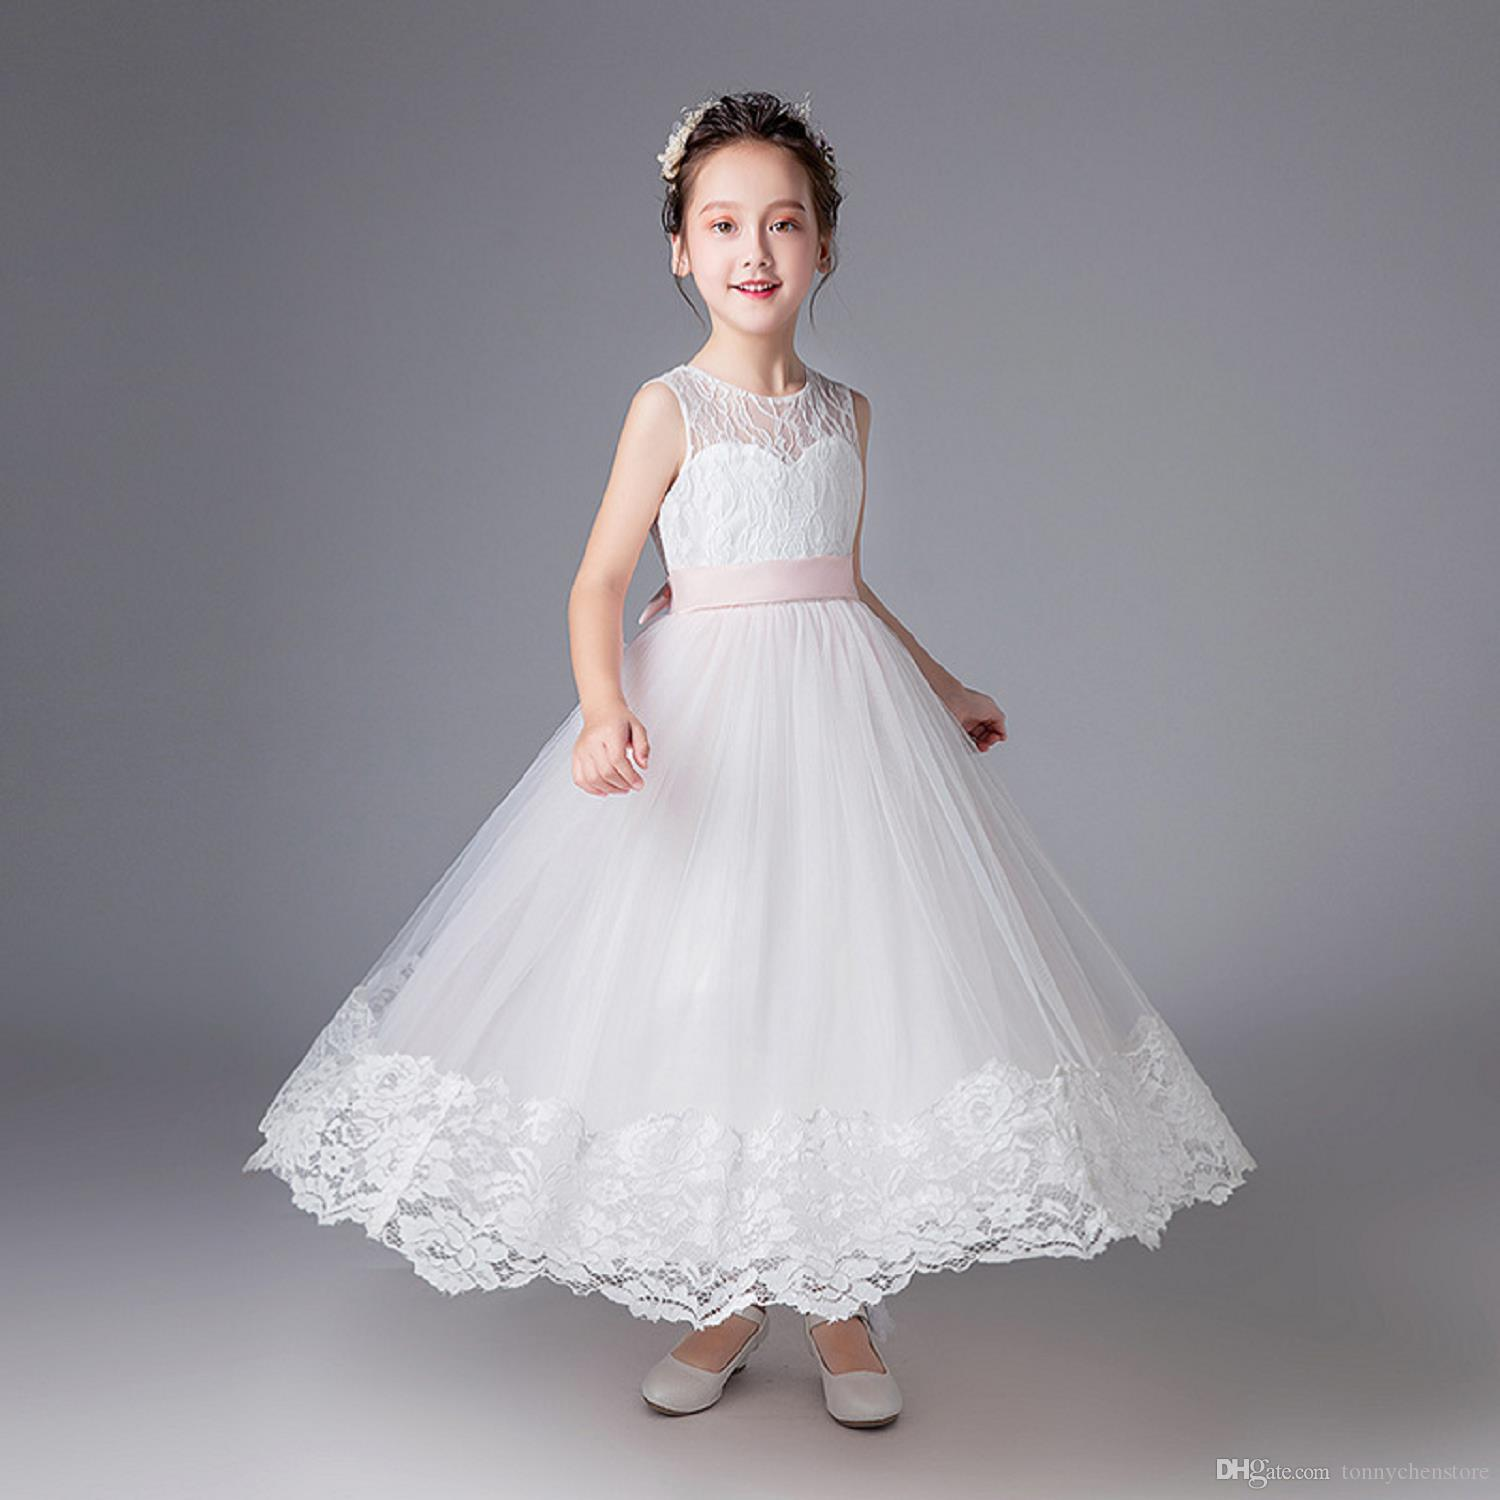 54c399d4bb13 2018 New Summer White And Pink Embroidery Lace Flower Girl Dresses  Sleeveless Ball Kids Dress Communion Dance Dresses Girls Pink Flower Girl  Dresses Red ...